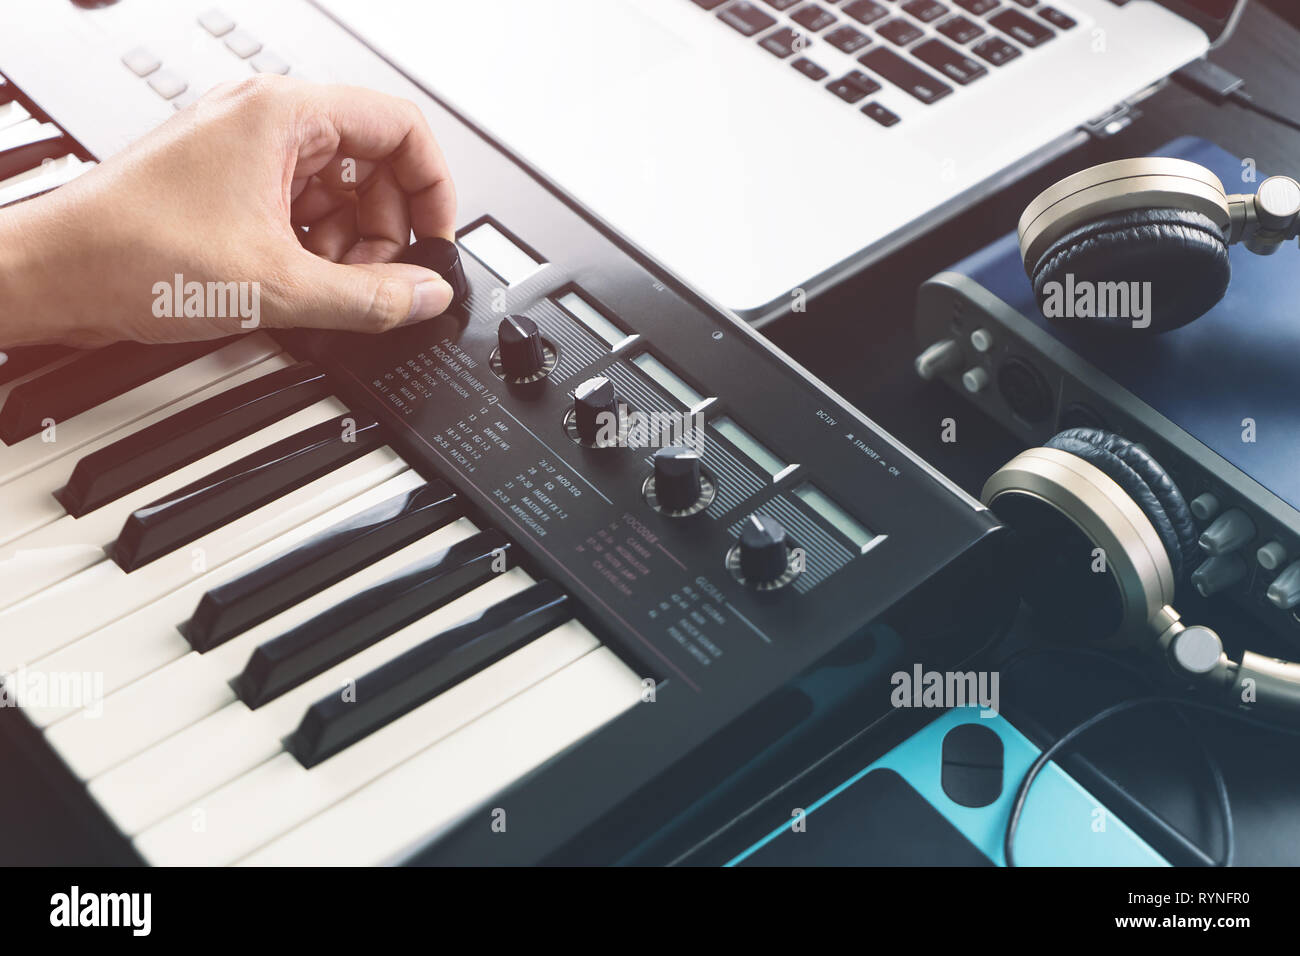 Musician is adjusting sound on synthesizer keyboard - Stock Image